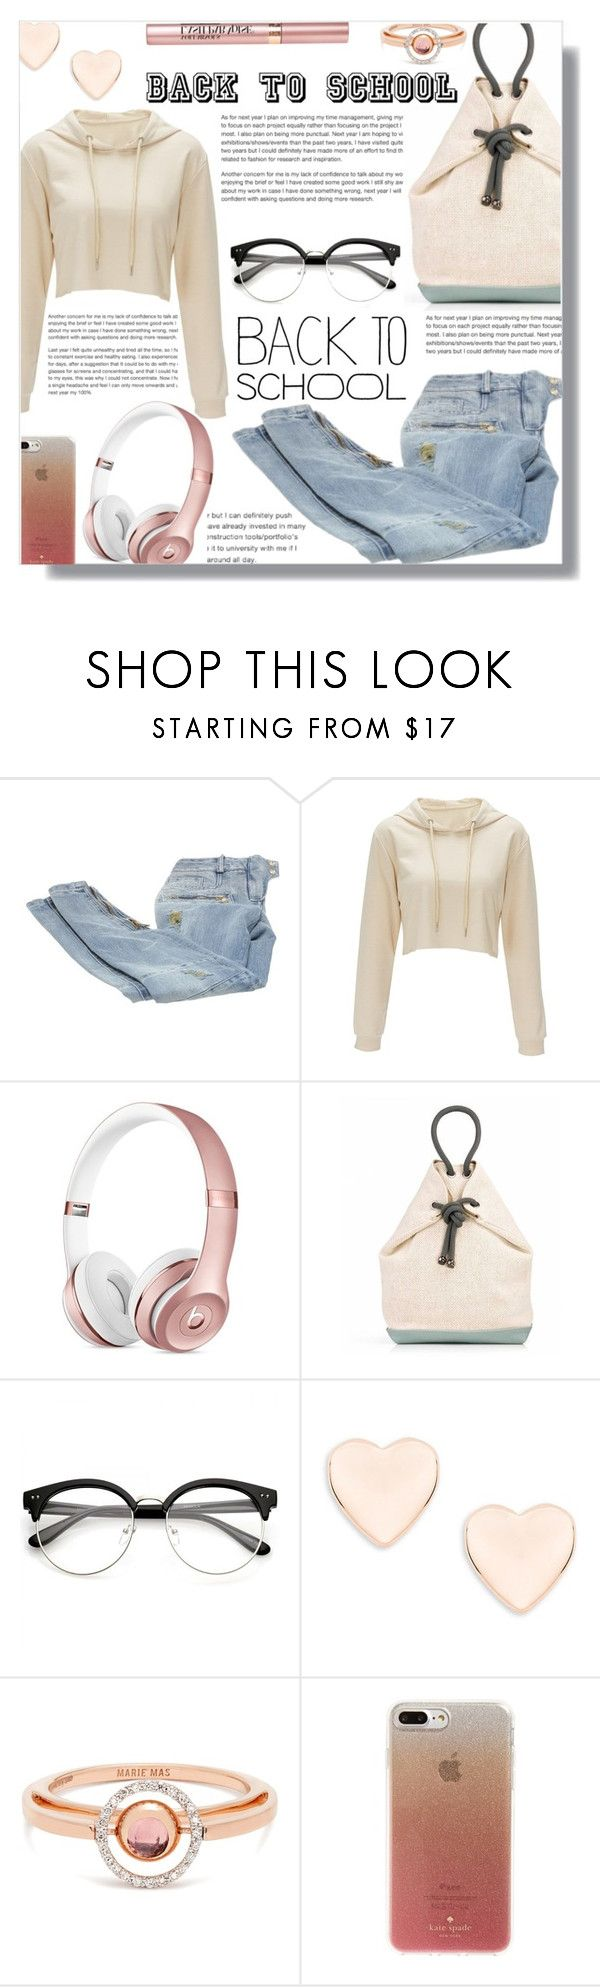 """Back to school - Contest!"" by sarguo ❤ liked on Polyvore featuring Balmain, Ted Baker, Marie Mas, Kate Spade, L'Oréal Paris, BackToSchool and sweatshirtsitwithus"